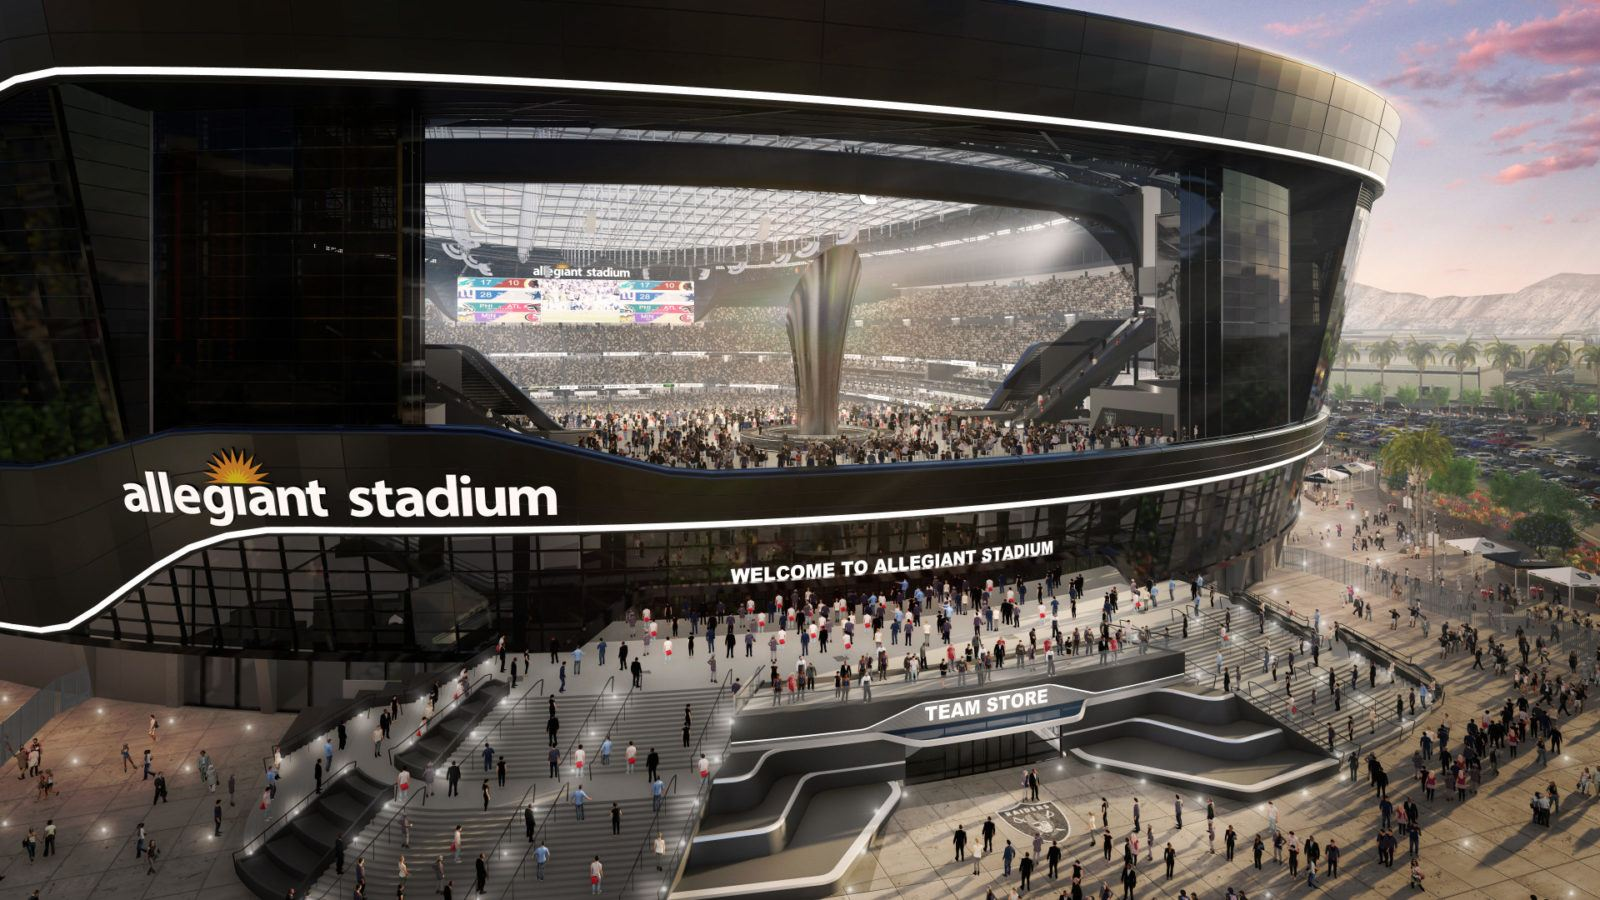 Mgm Will Be The Official Gaming Partner Of The Las Vegas Raiders